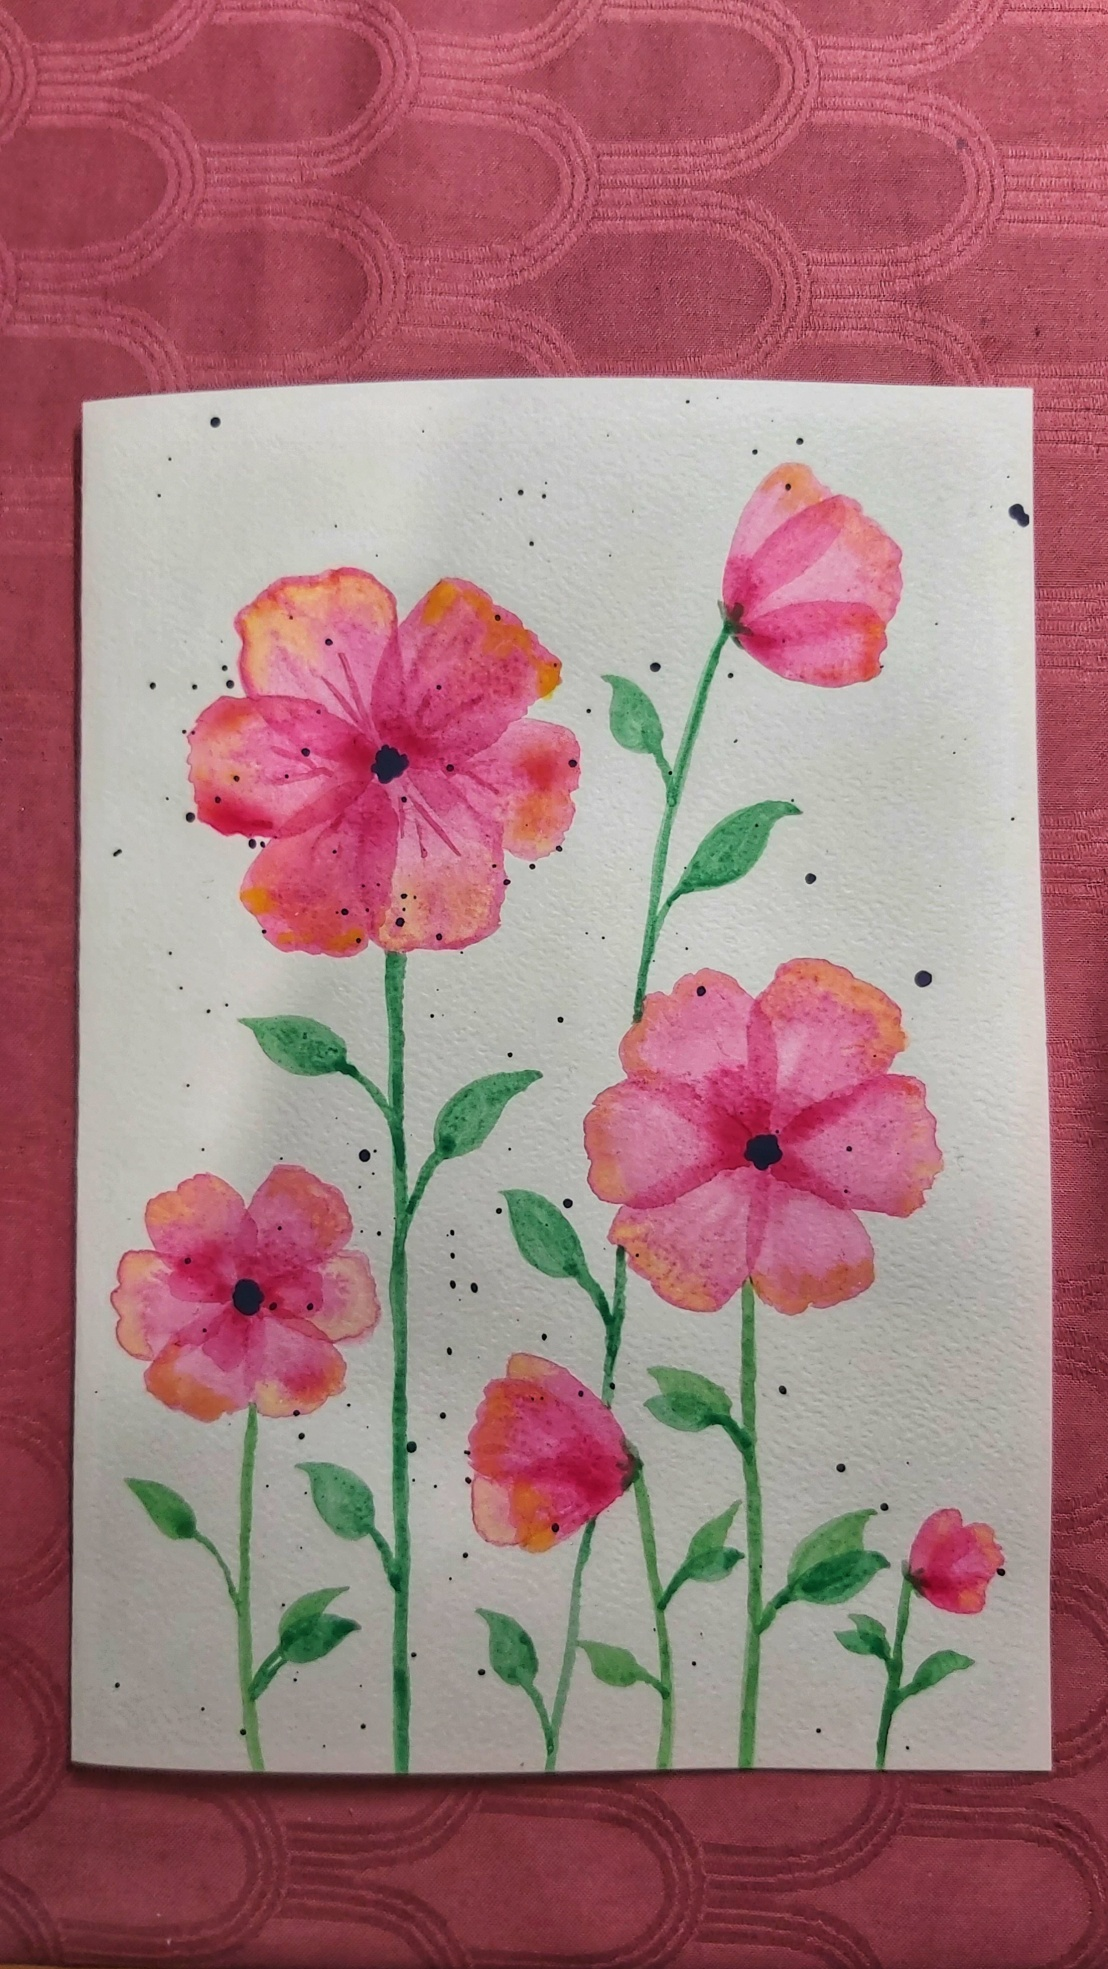 A completed birthday card with neon pink watercolour poppies